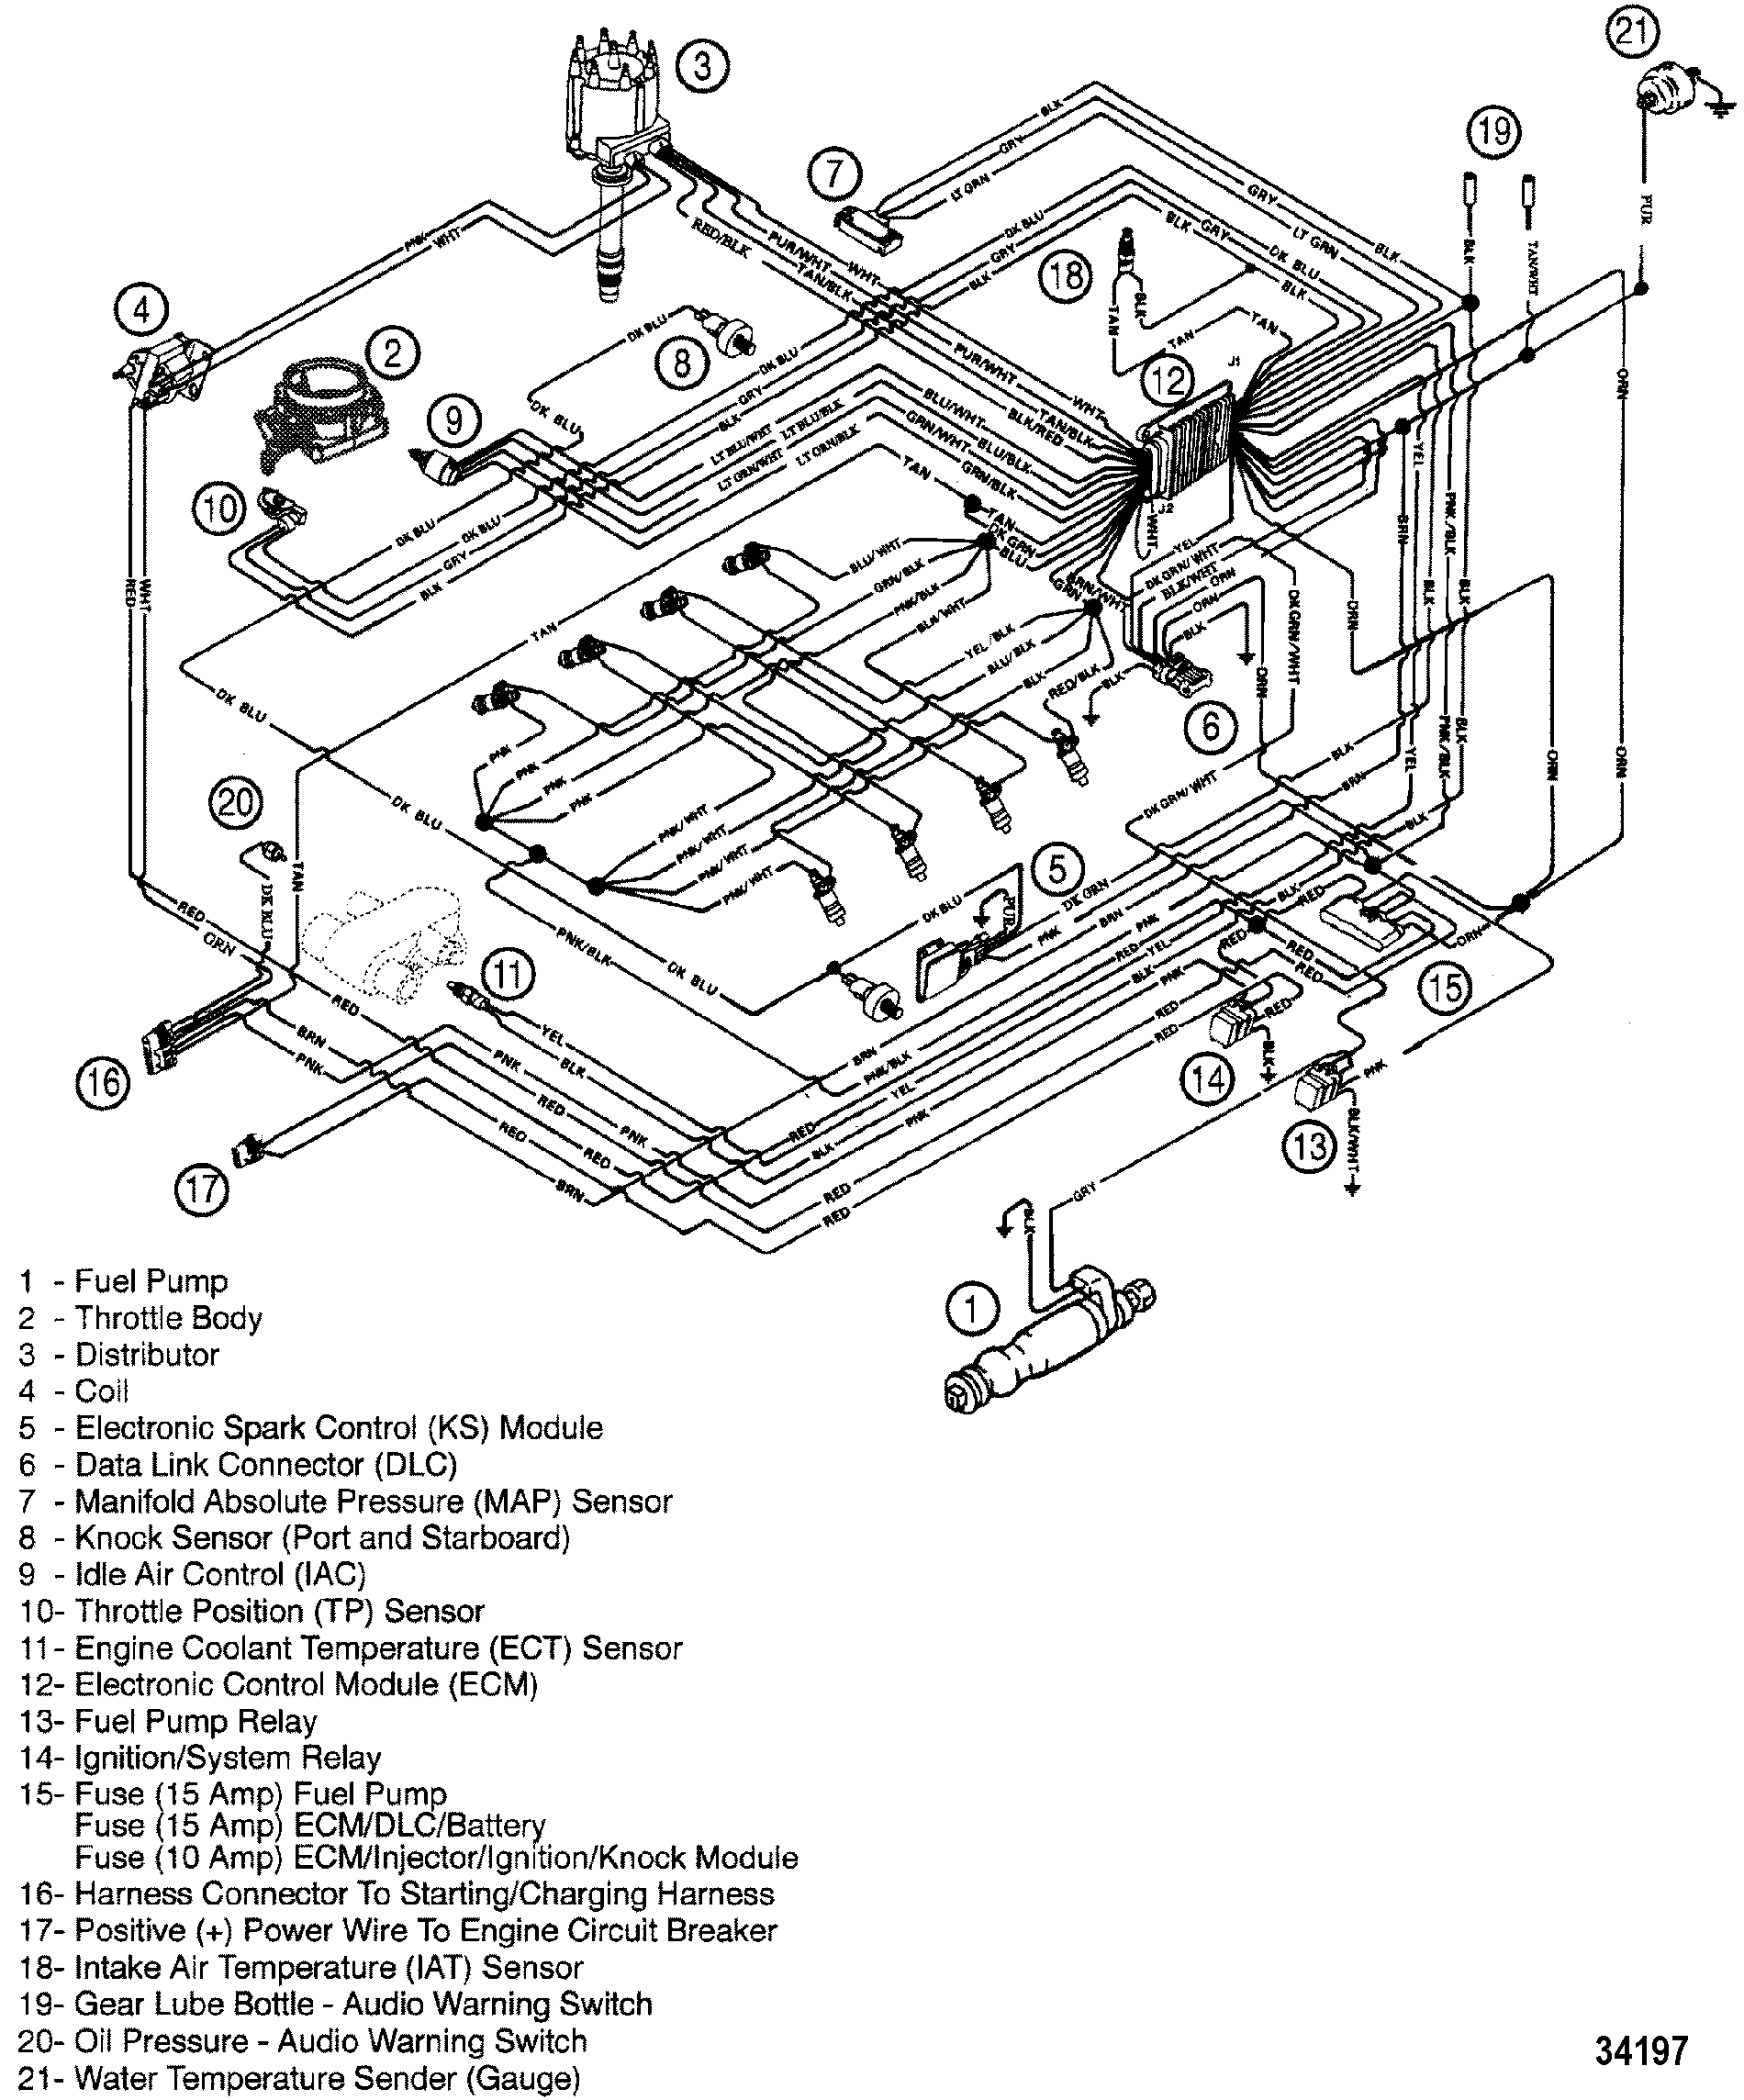 CP Performance - Wiring Harness (EFI) on mallory ignition module, mallory ignition wiring diagram chevy, mallory ct pro ignition system, mallory ignition distributor, mallory ignition wiring diagram 85, mallory ignition wiring diagram 75, ford 8n ignition system diagrams, mallory 8548201 distributor wiring diagram, mallory ignition troubleshooting, mallory marine ignition wiring, mallory 6100m ignition, mallory ignition wiring diagram digital motorcycle, mallory magneto ignition wiring diagram,